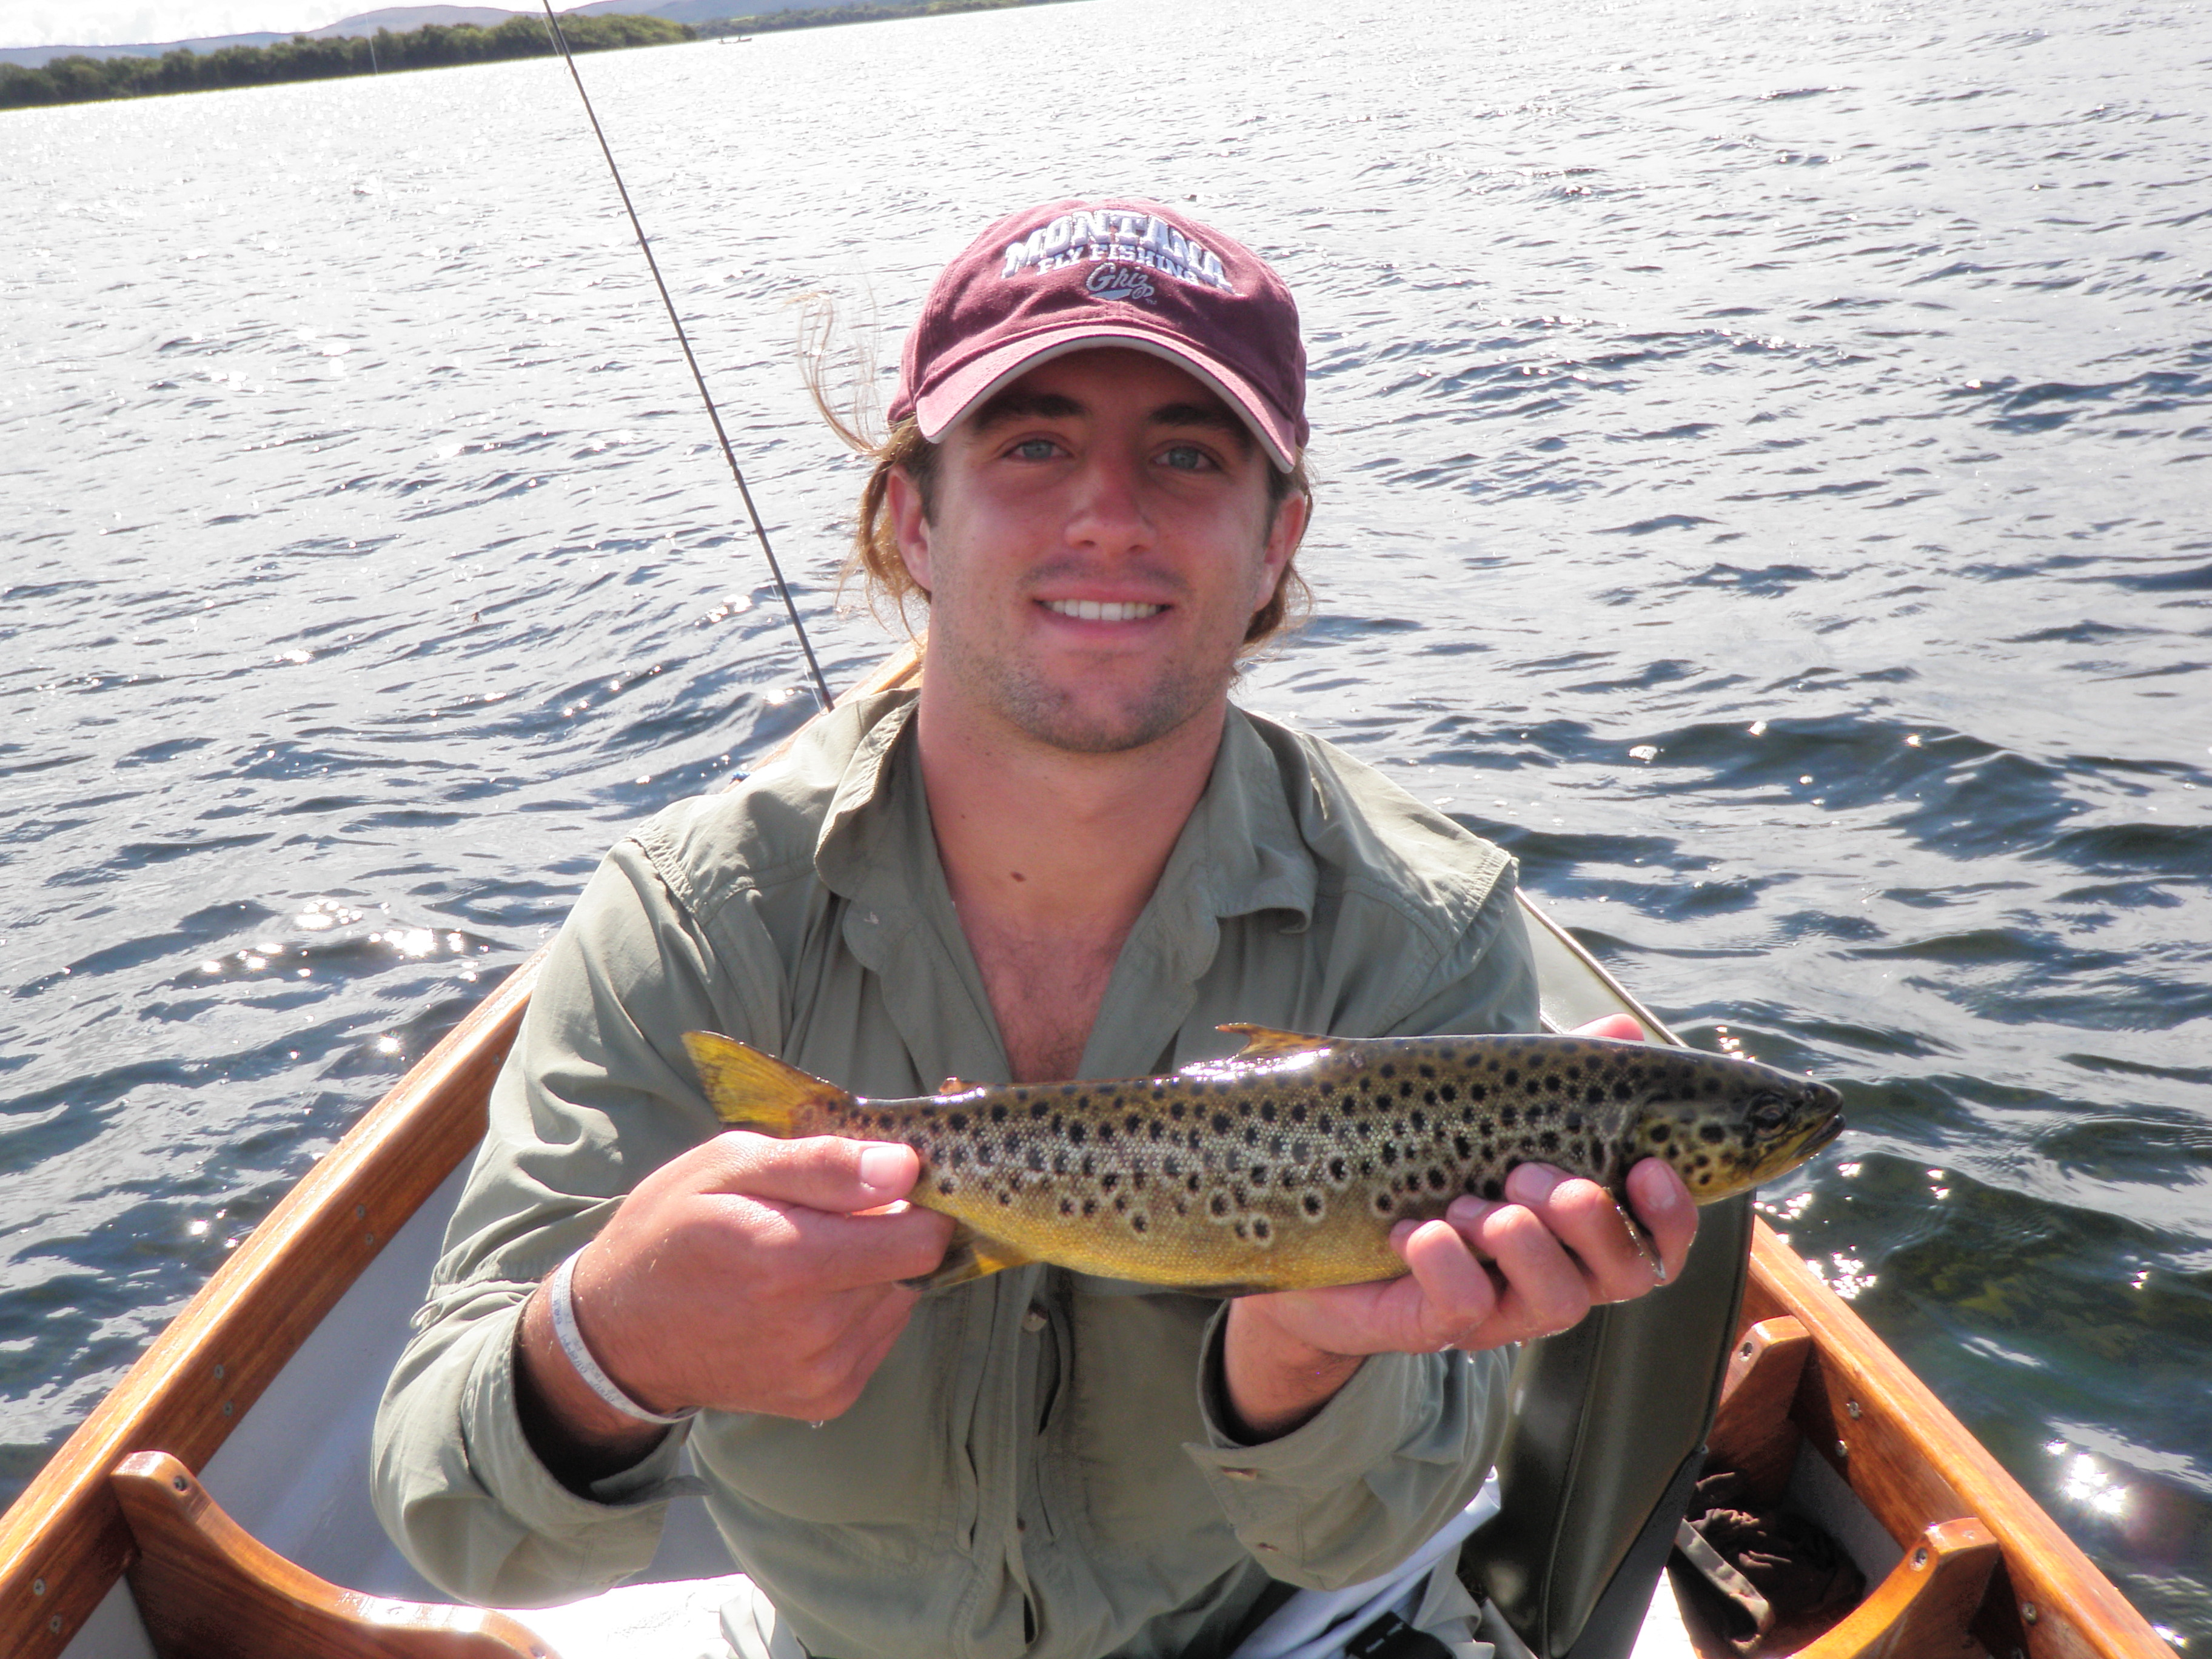 Second Corrib brown trout.